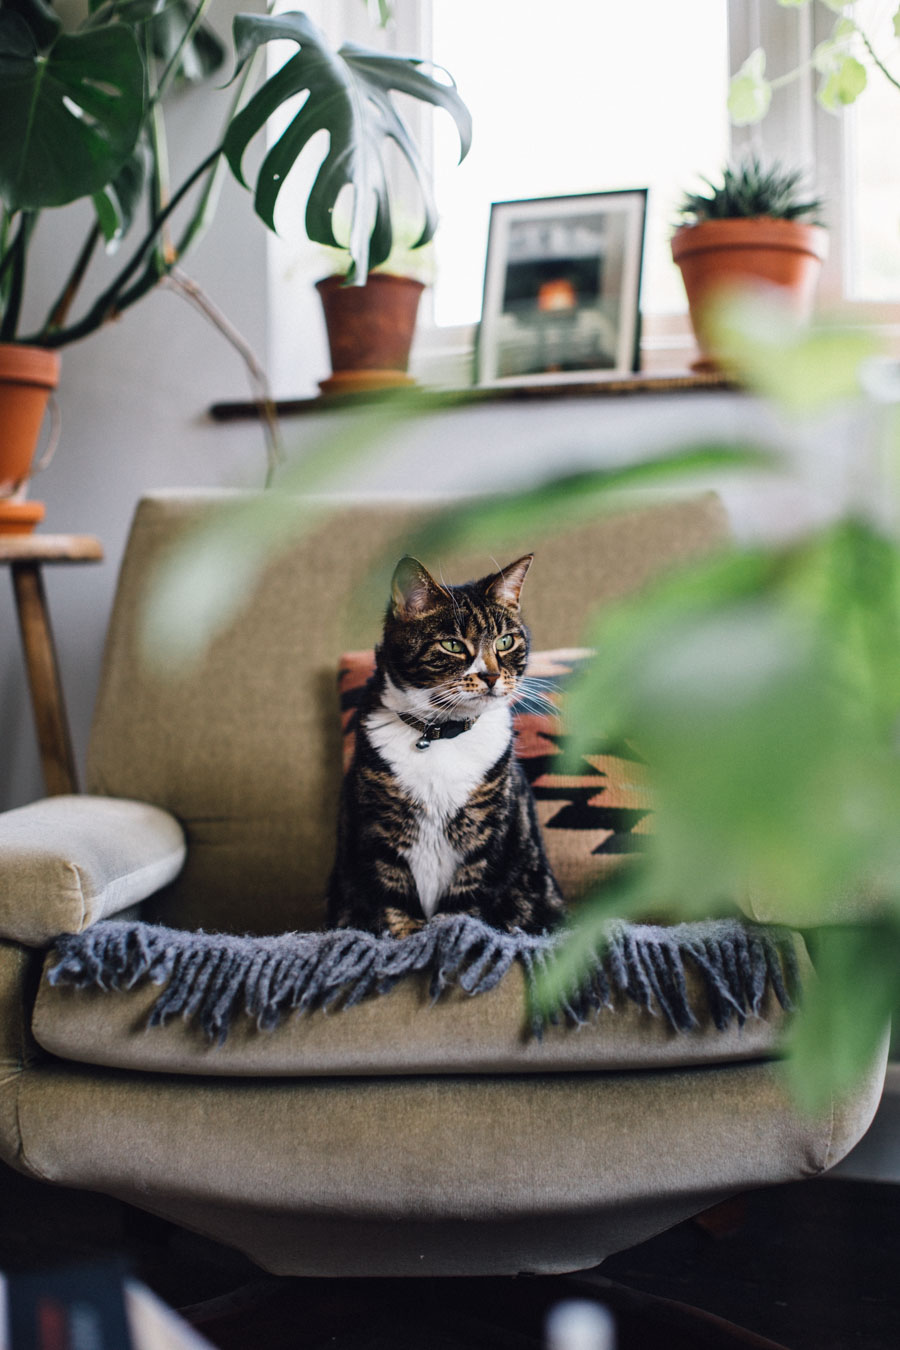 Tabby cat and plants